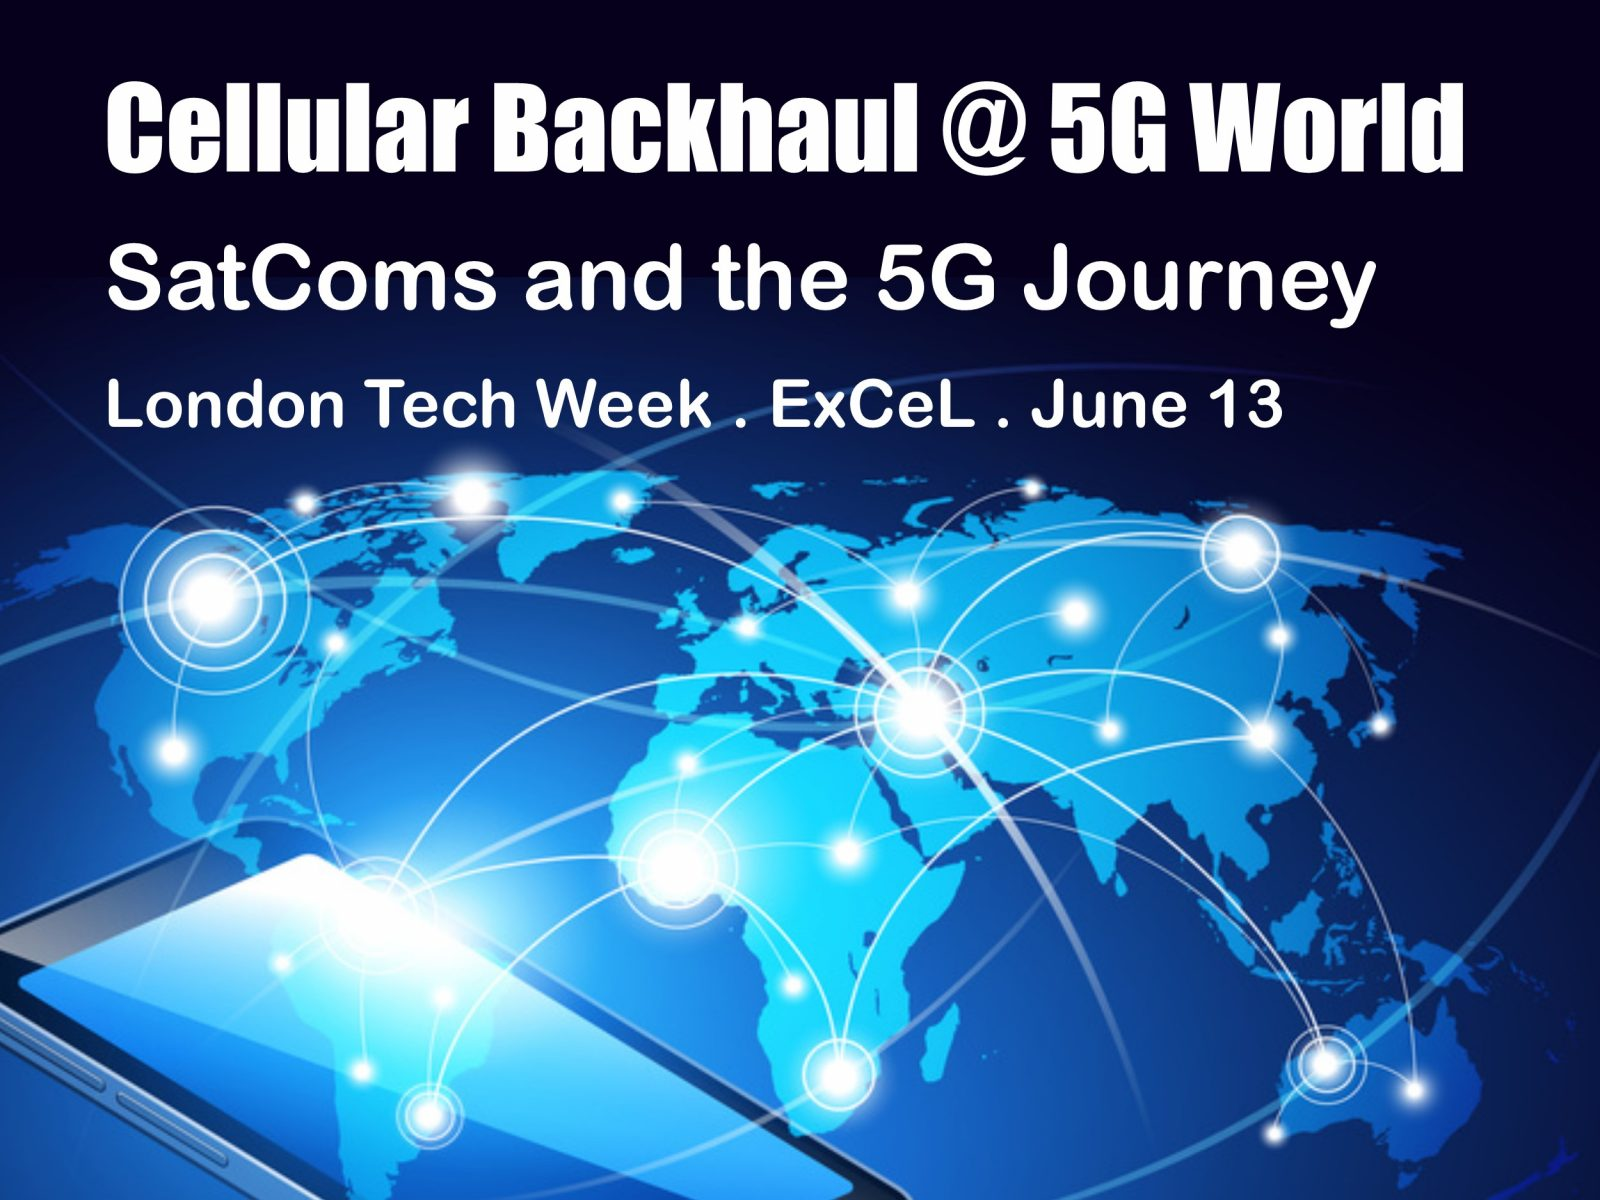 5G-Satellite Integration Focus for London Thought-Leadership Panels